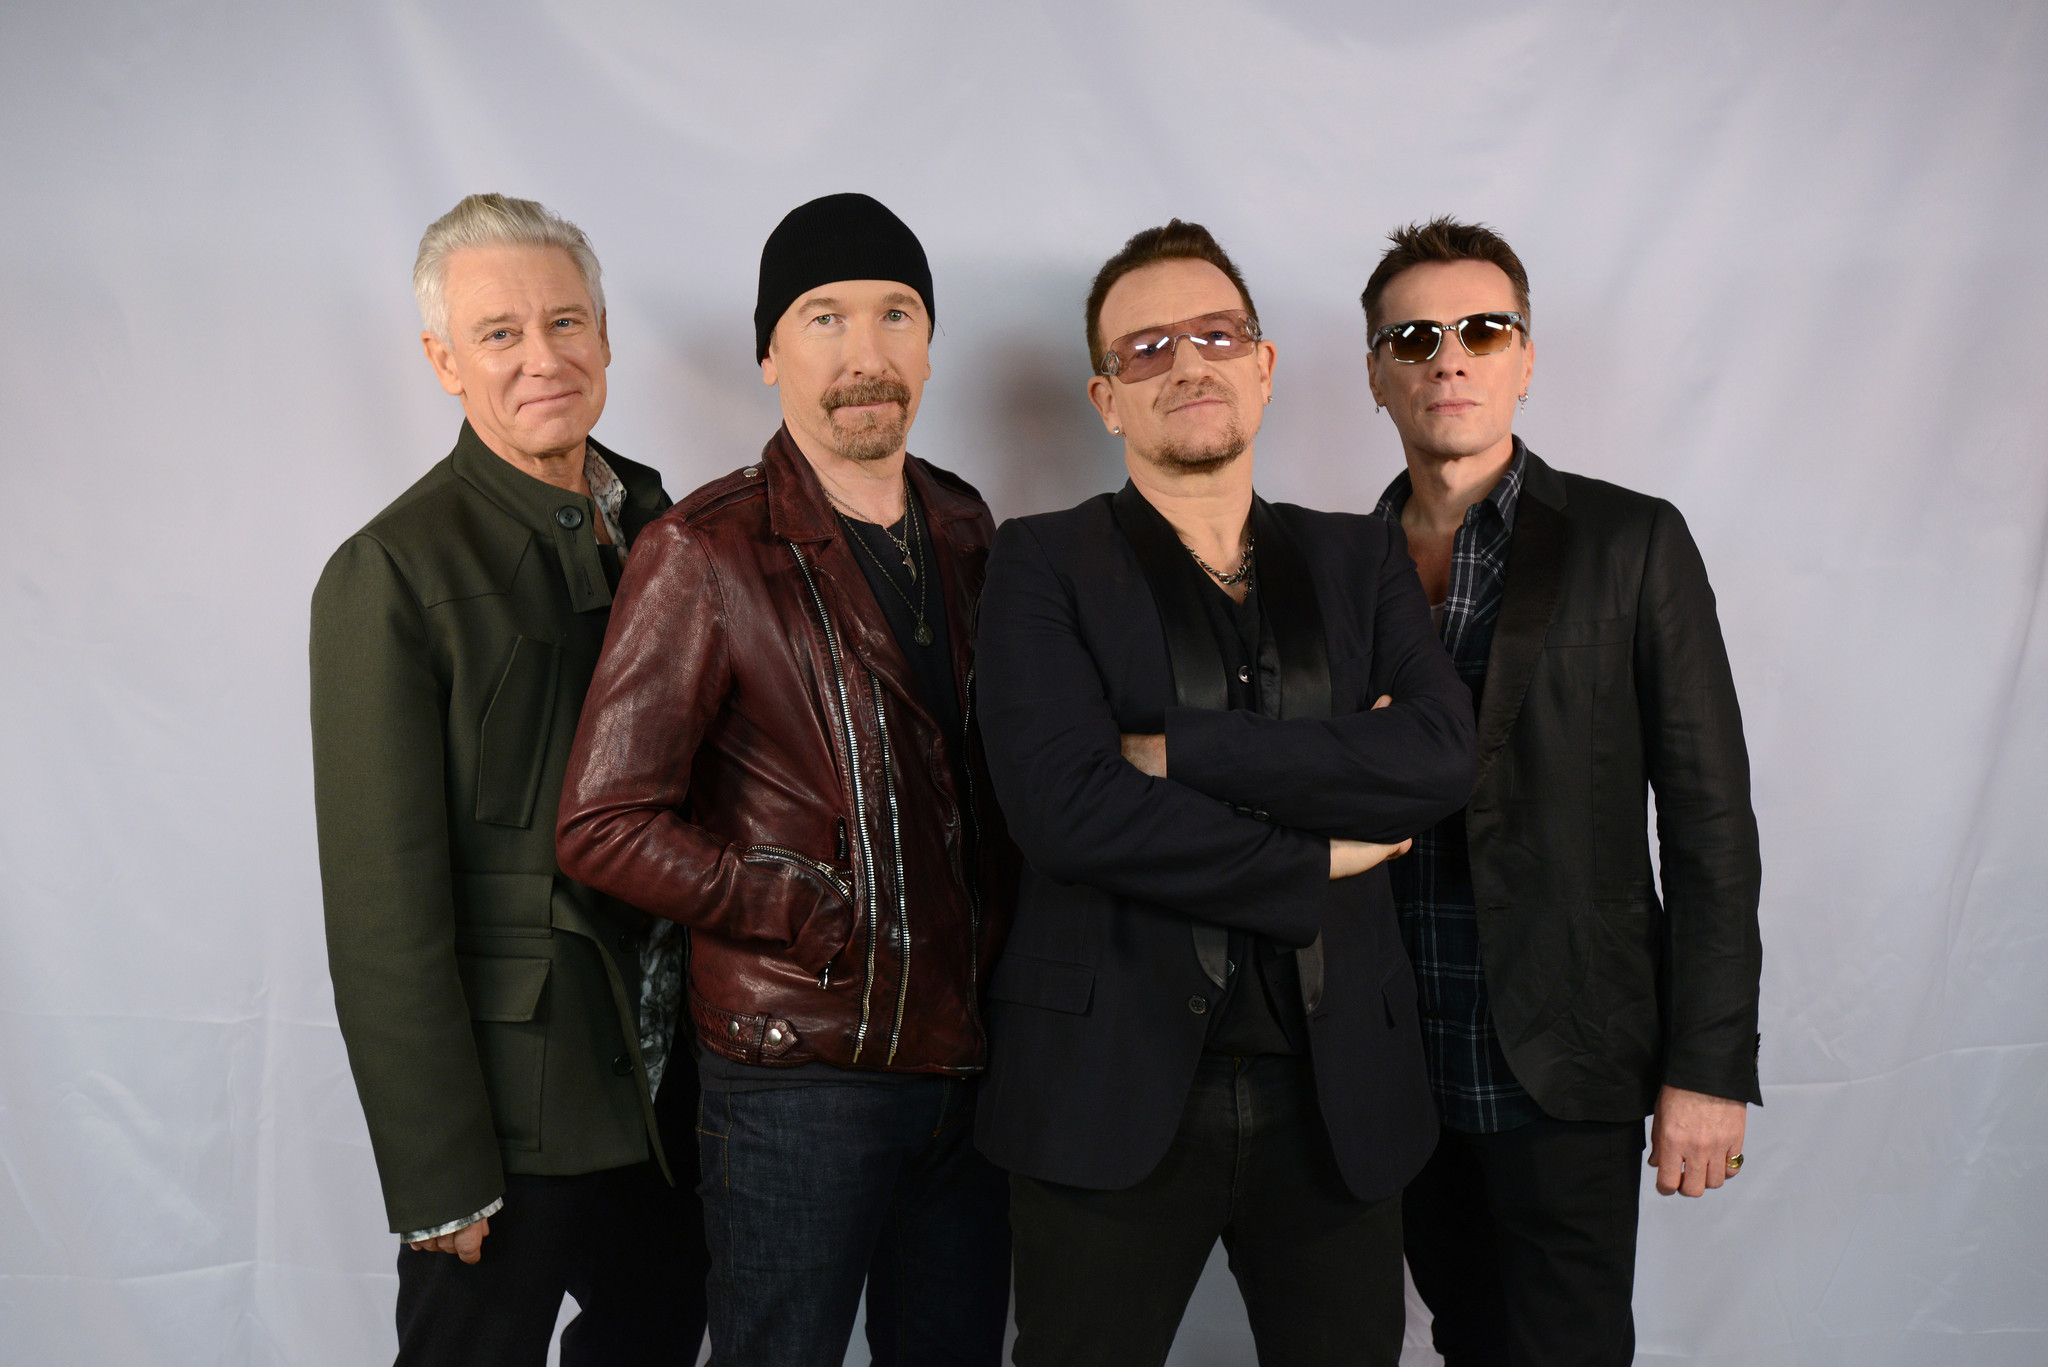 la-et-ms-u2-to-launch-innocence-experience-tour-in-2015-20141203